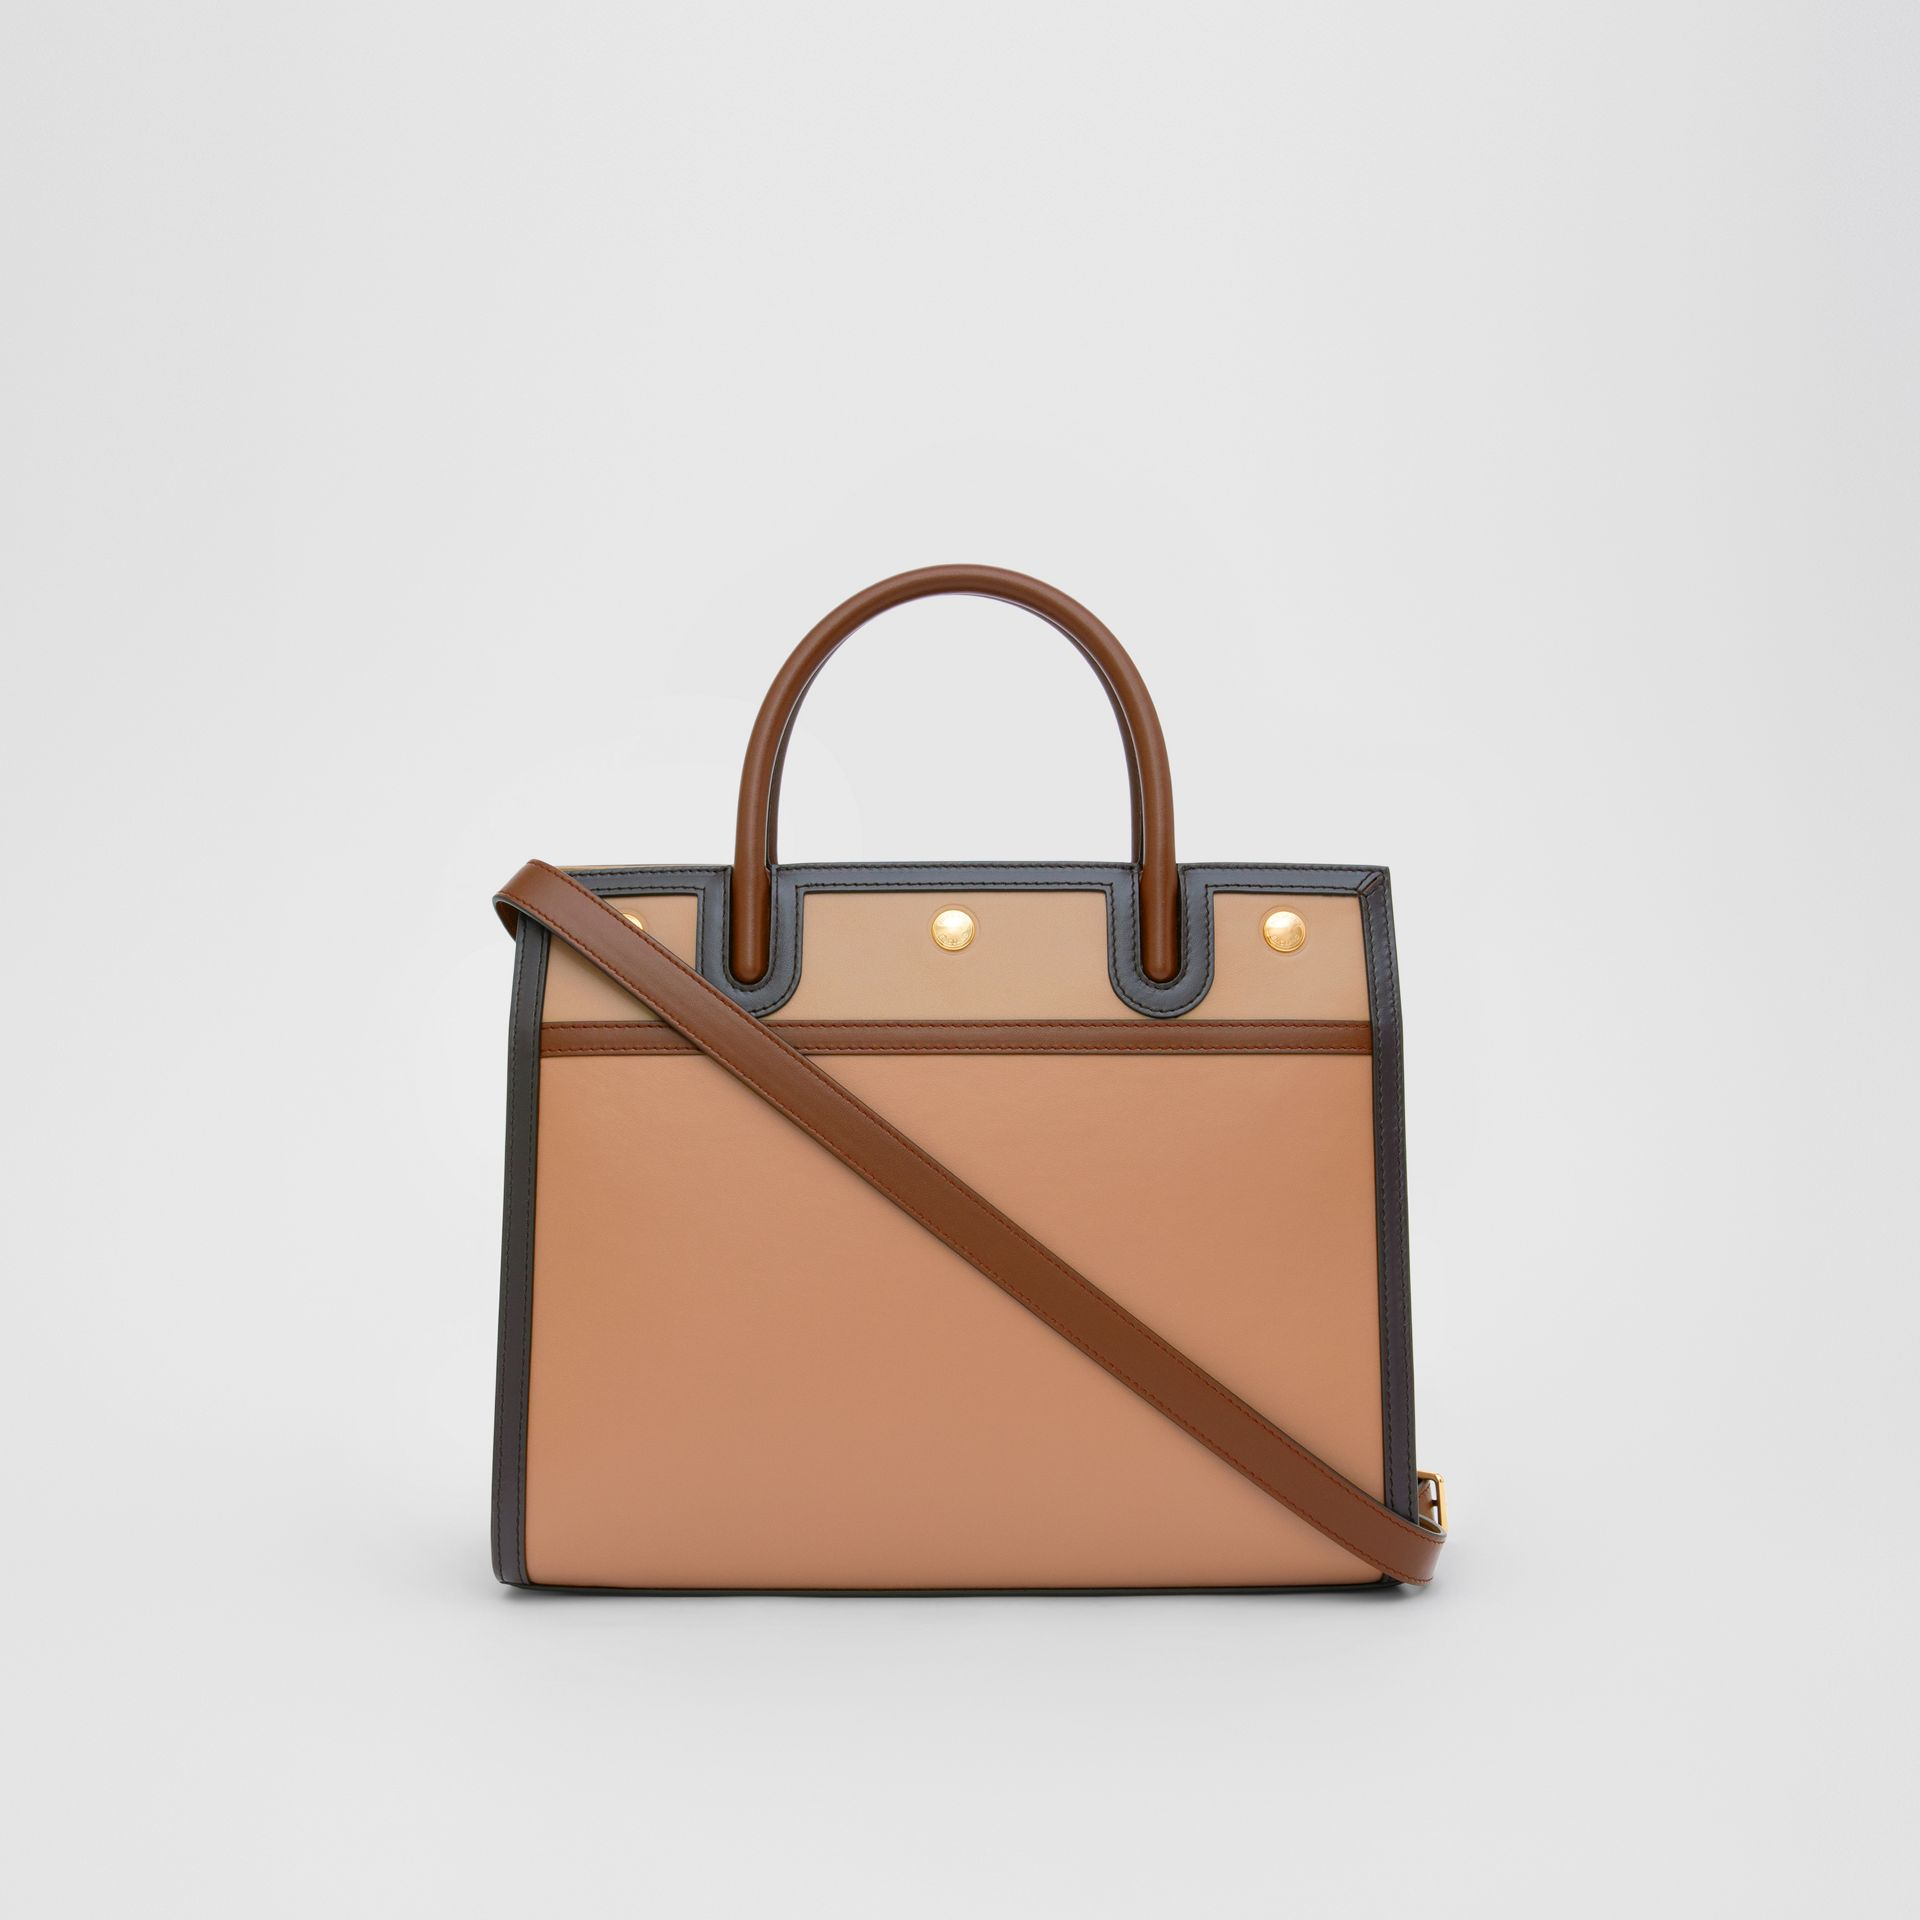 Small Leather Two-handle Title Bag in Soft Fawn - Women | Burberry - gallery image 7